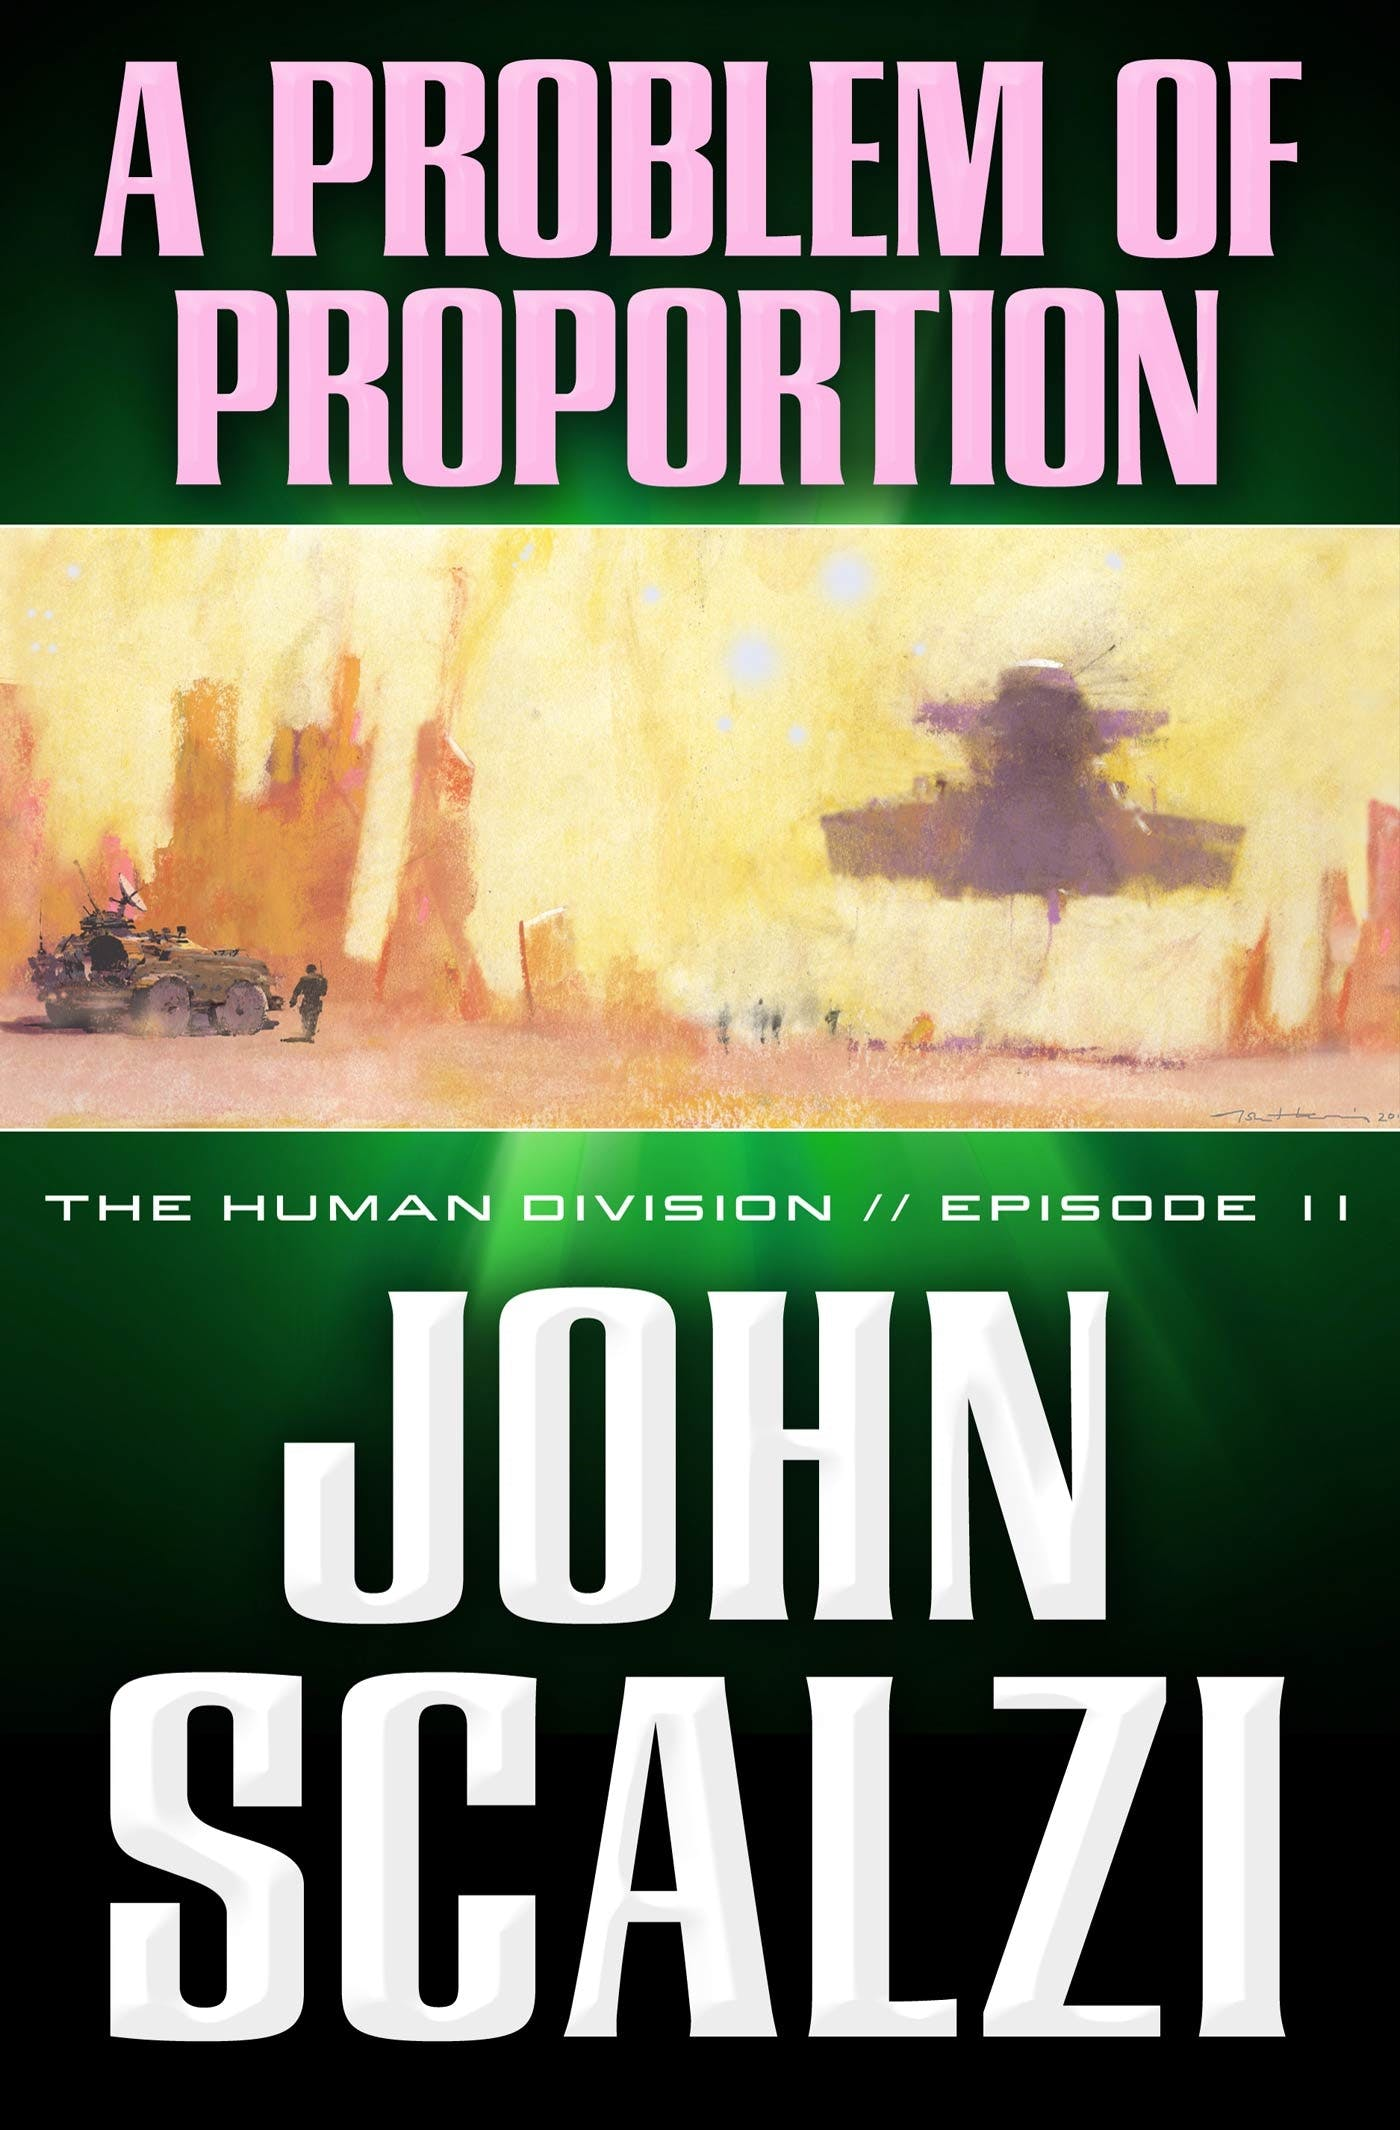 Image of The Human Division #11: A Problem of Proportion